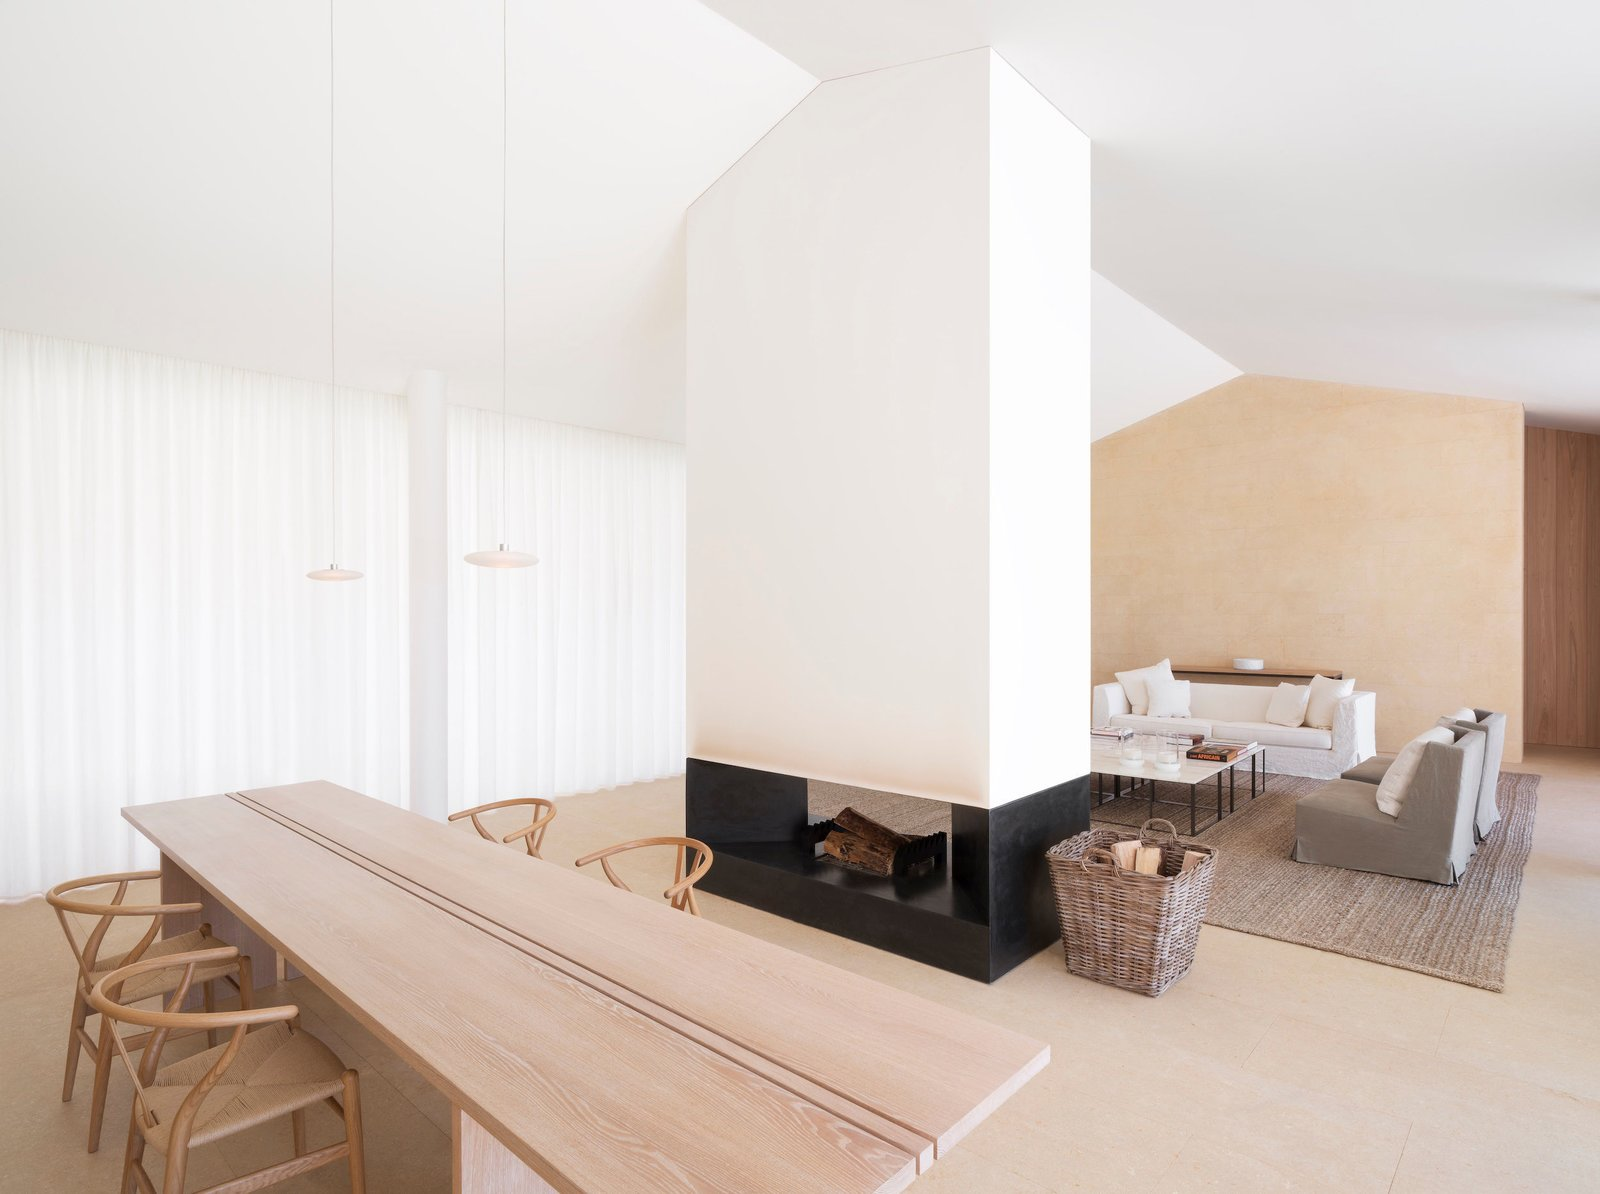 Nestled in the private residential estate of Les Parcs de Saint Tropez, this contemporary home was created by the London-based minimalist designer, John Pawson. Clean lines and bright white walls frame the freestanding fireplace, making for a dynamic open living space where the fireplace acts as the heart of the room.  97+ Modern Fireplace Ideas by Dwell from Proof That a Modern Fireplace Can Be the Defining Factor of a Space